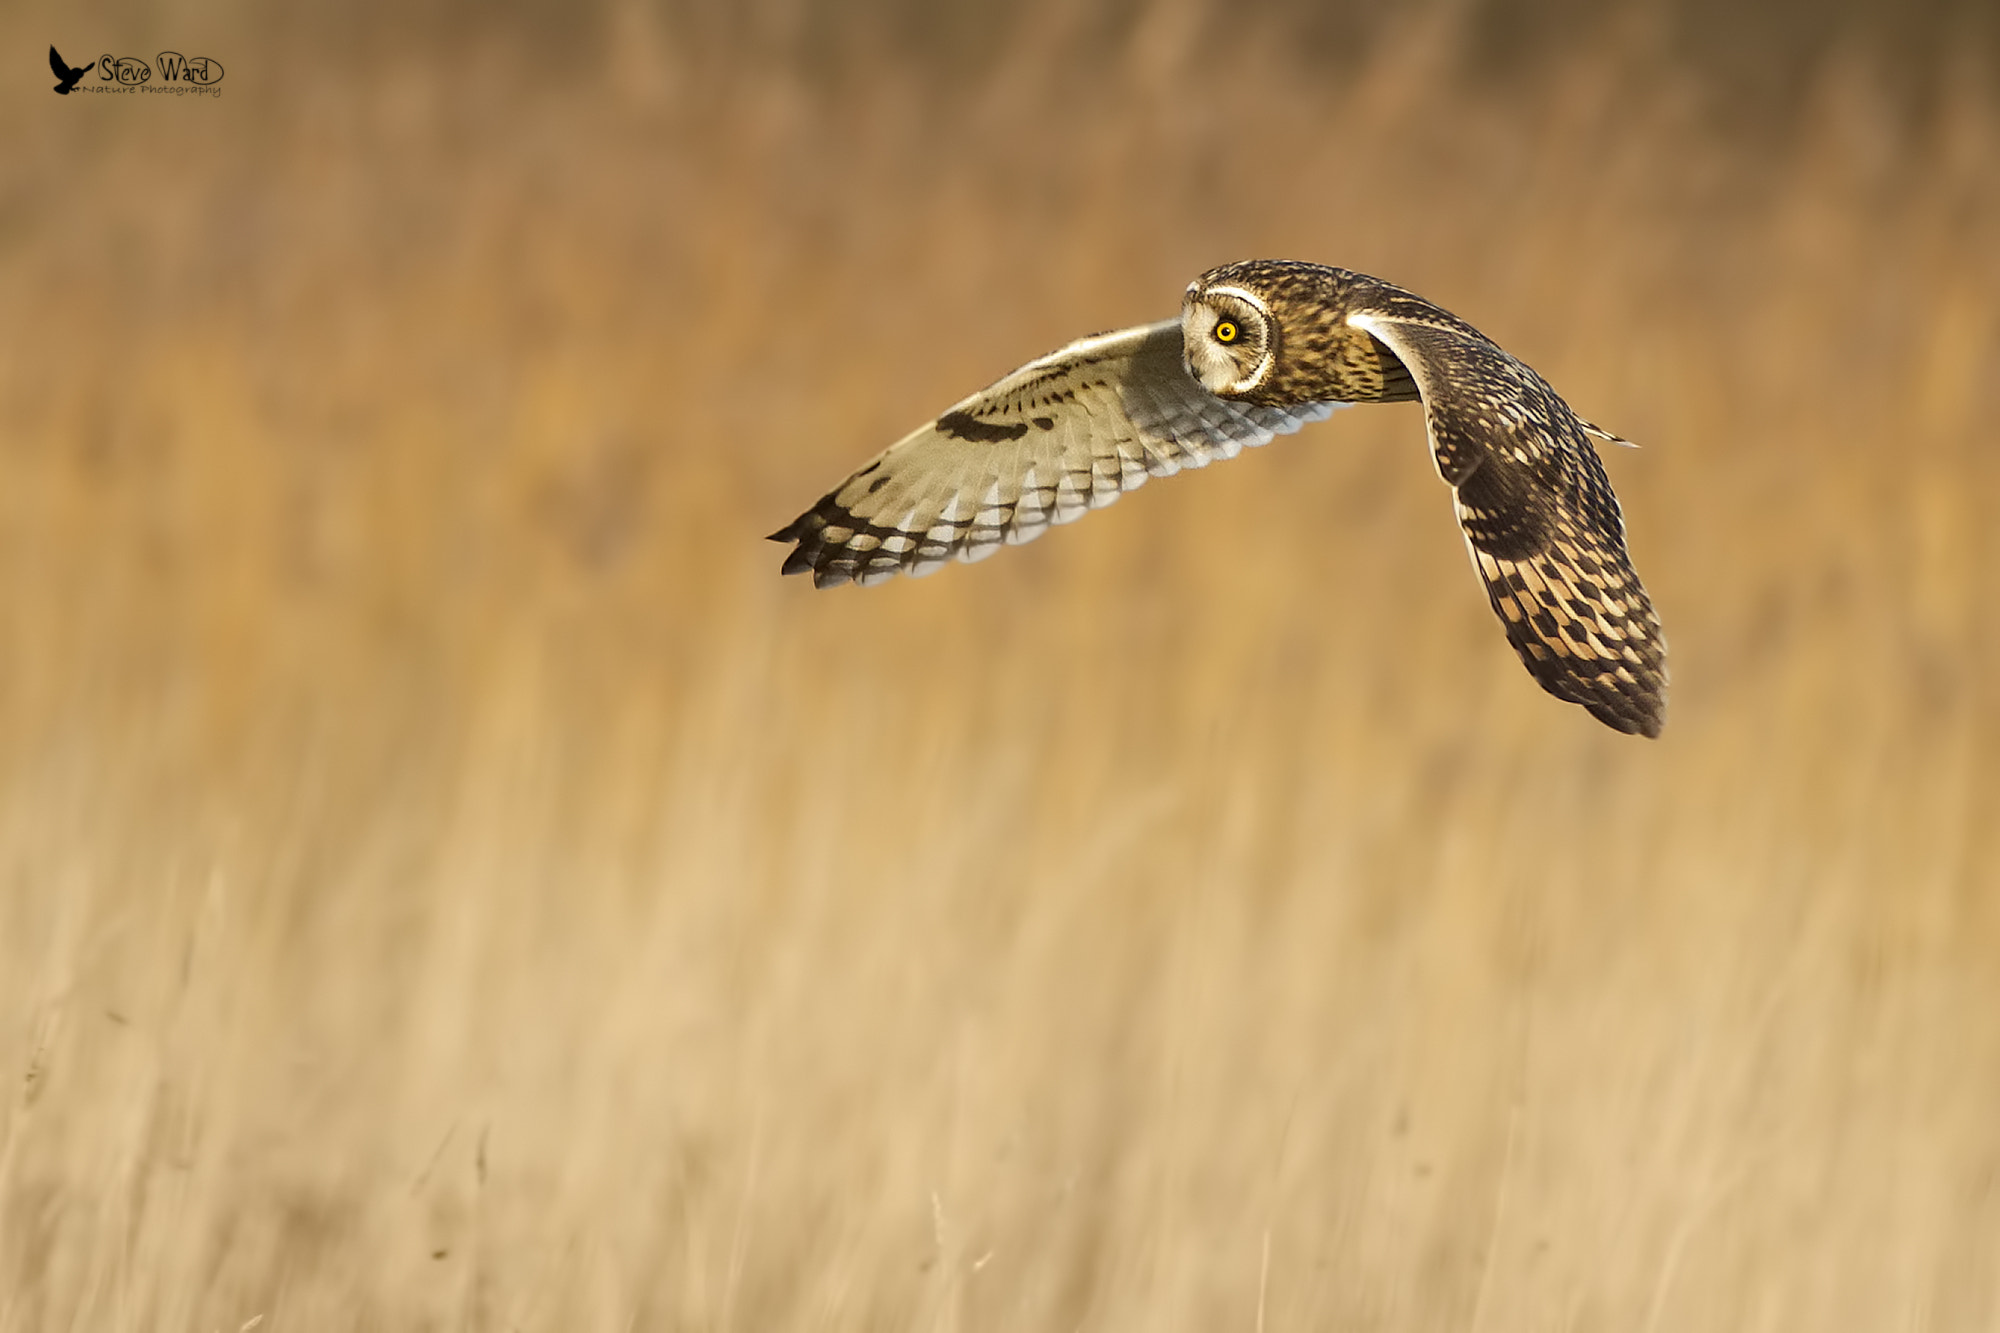 Photograph Combing the grasses by Steven Ward  on 500px